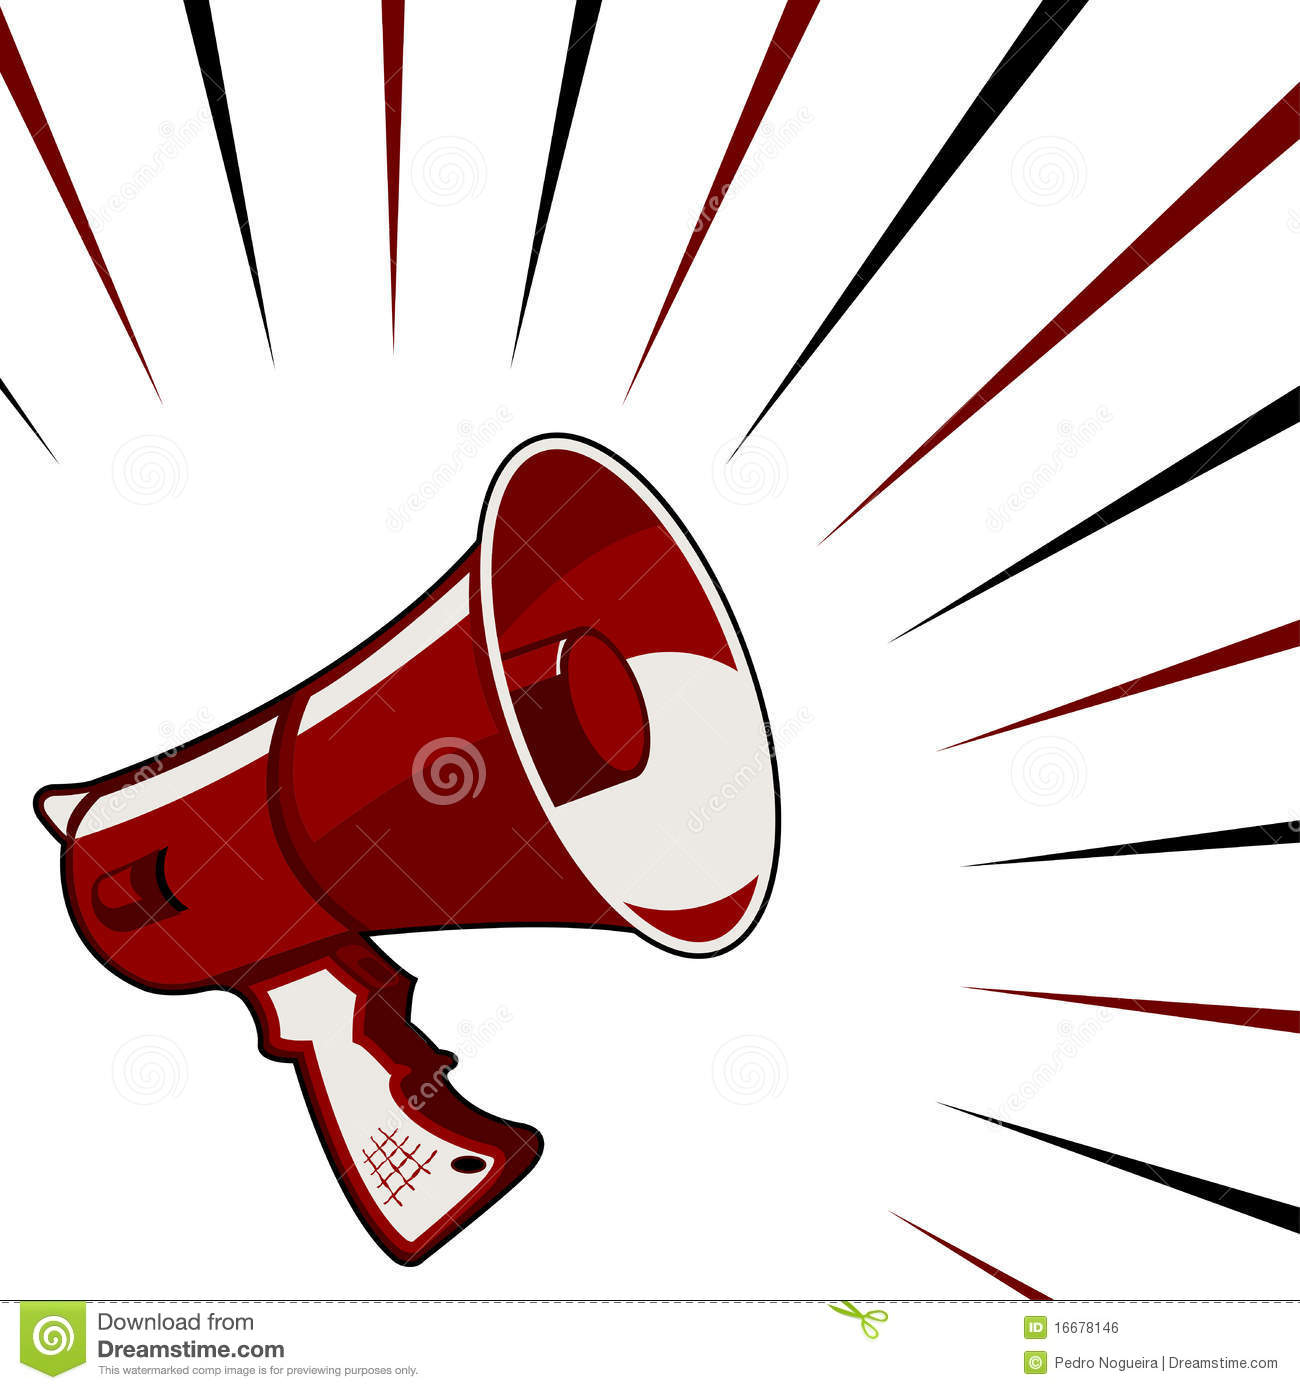 Megaphone Announcement Royalty Free Stock Image - Image: 16678146